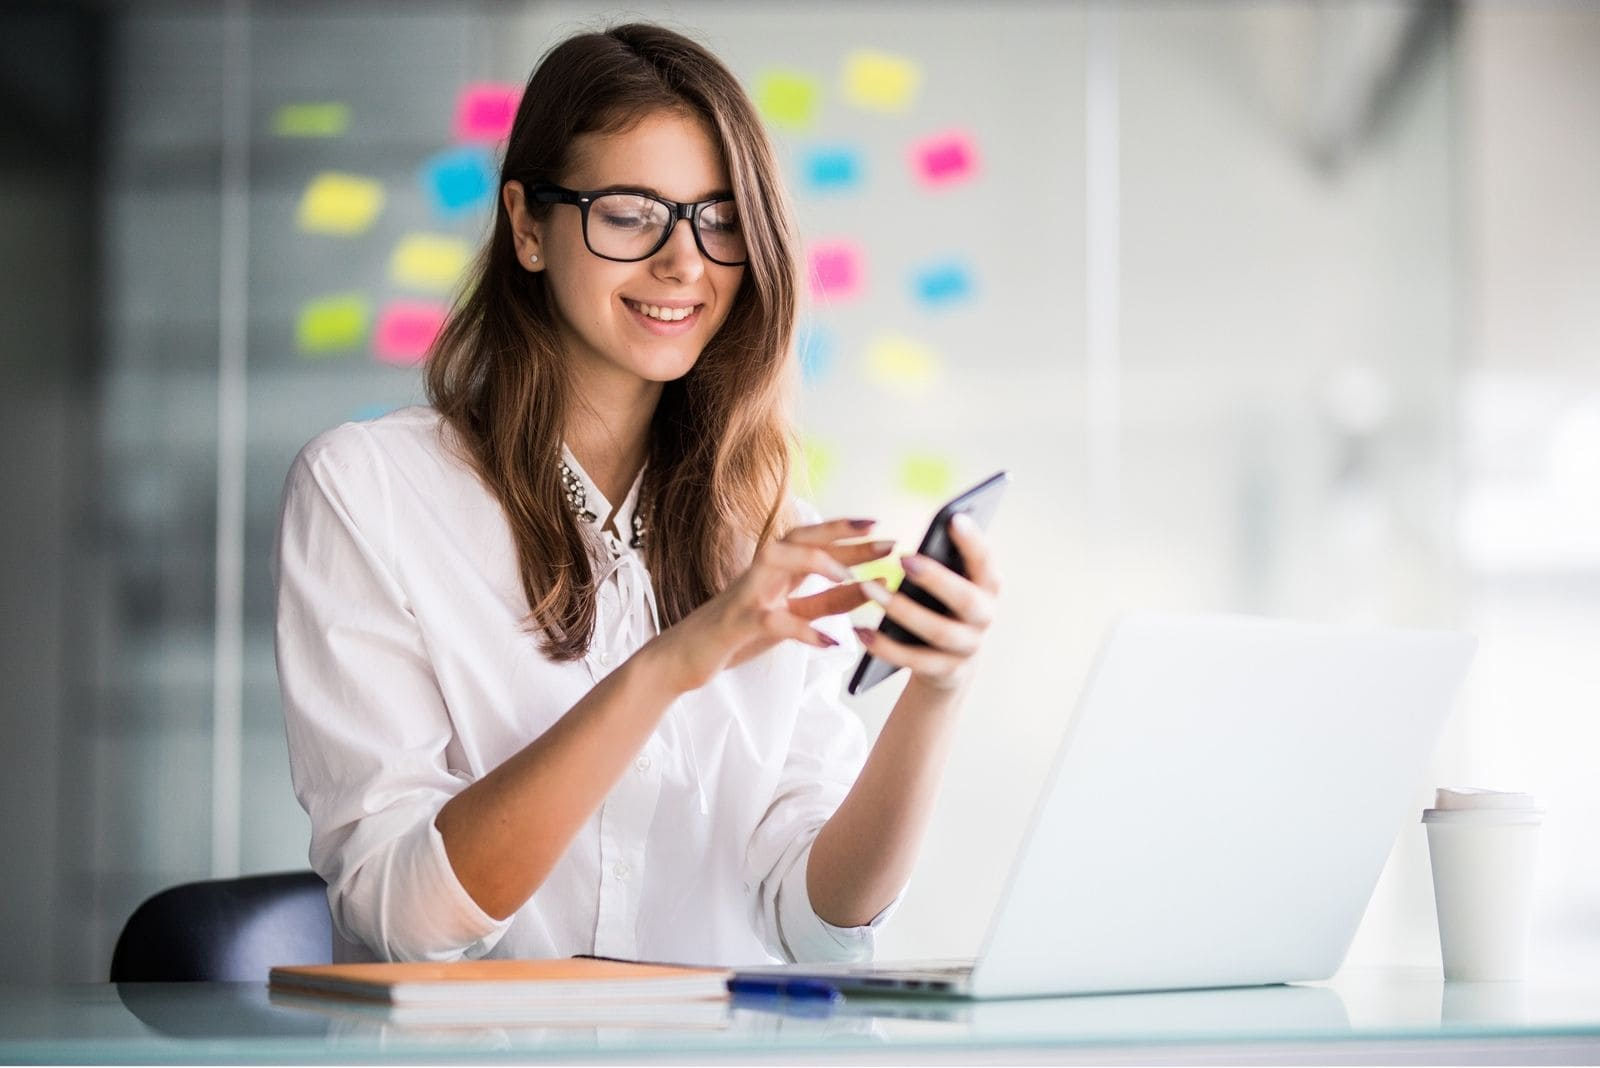 businesswoman in the office browsing her smartphone during the day